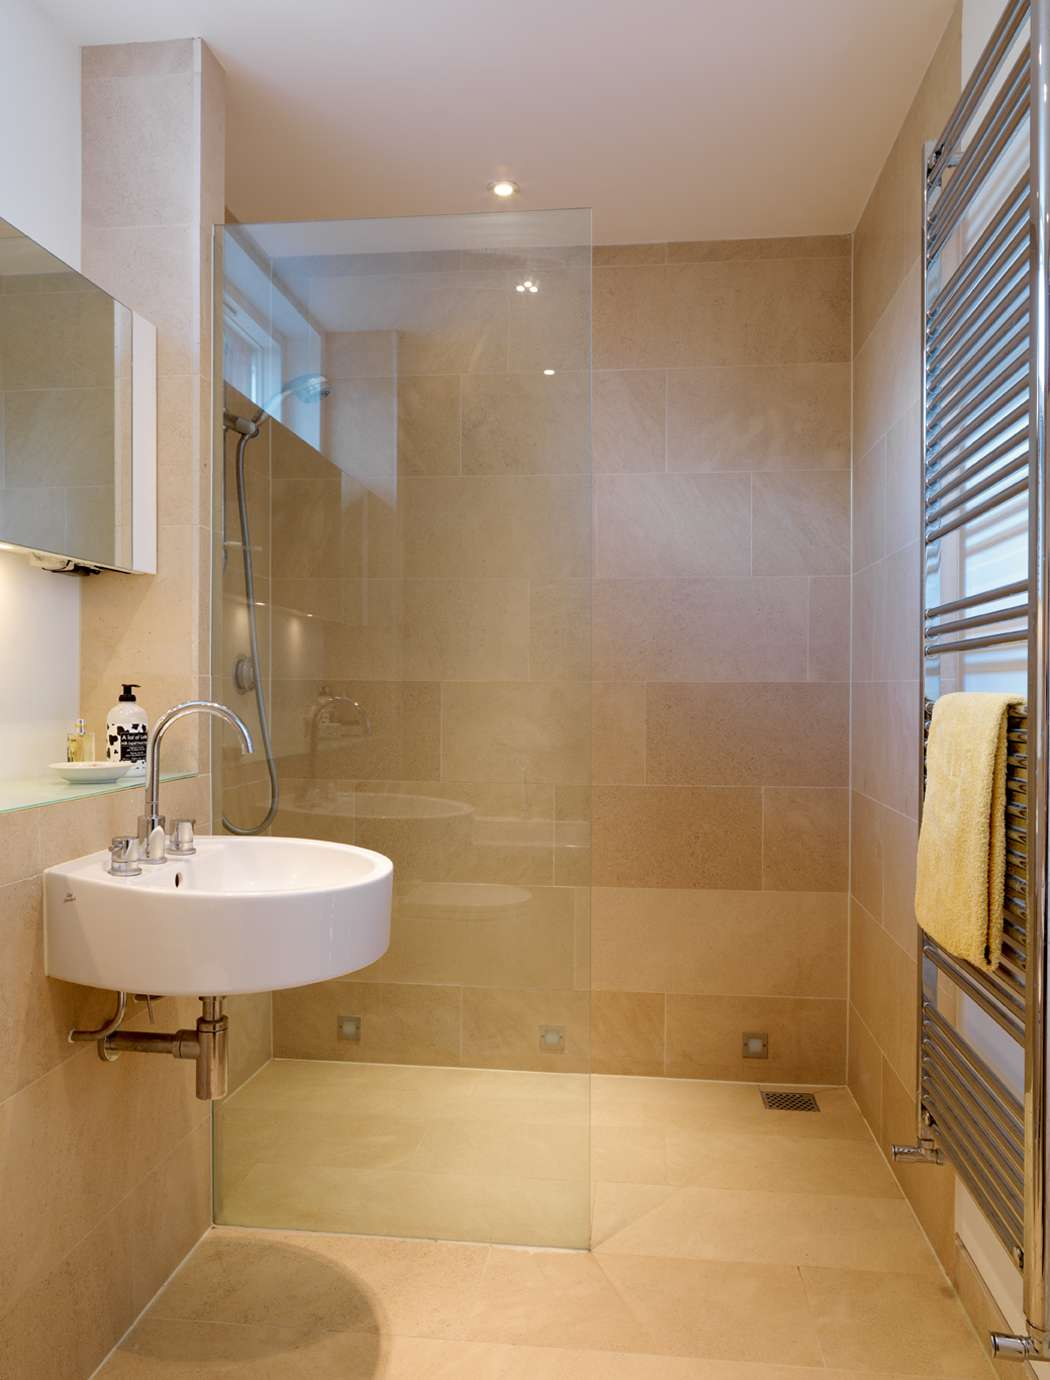 Modern Bathroom Design Ideas 2013 ~ Everyday plumber bristol leaks toilets taps all